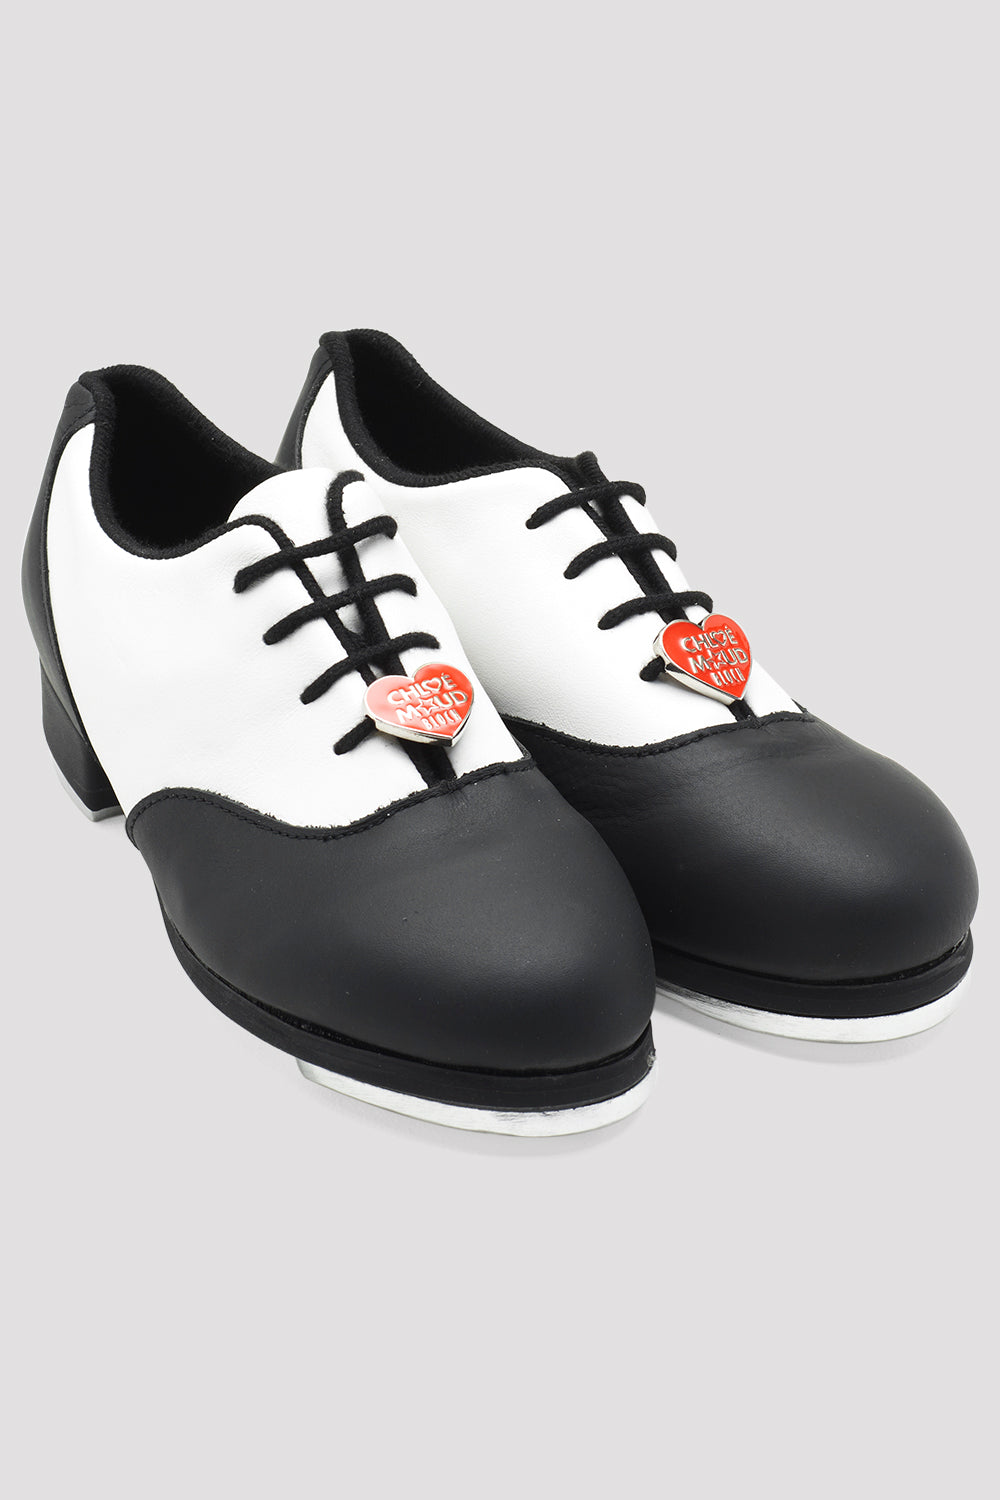 Girls Chloe And Maud Tap Shoes